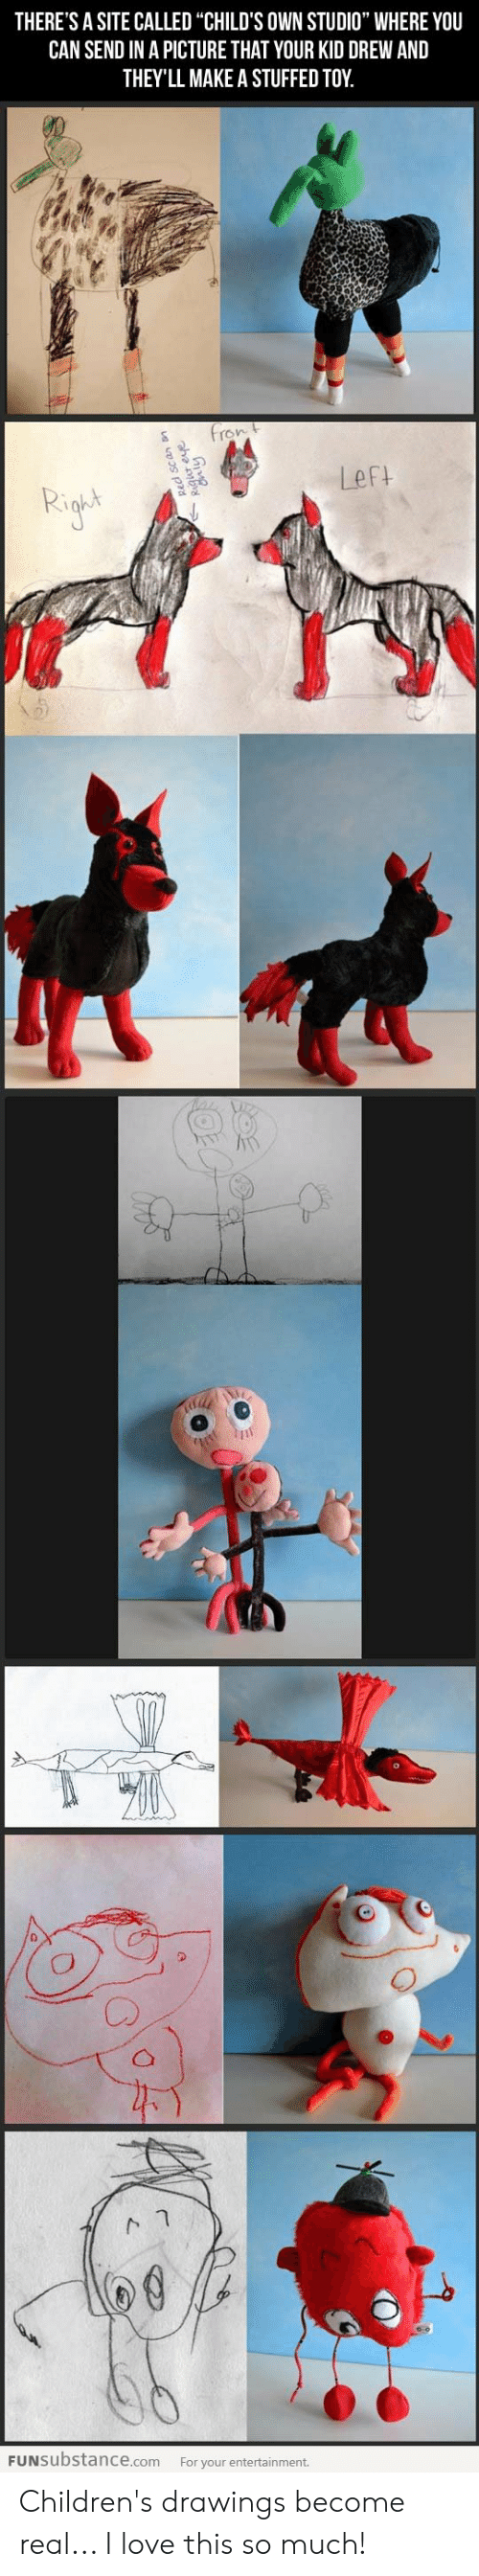 "Love, Drawings, and A Picture: THERE'S A SITE CALLED ""CHILD'S OWN STUDIO"" WHERE YOU  CAN SEND IN A PICTURE THAT YOUR KID DREW AND  THEY'LL MAKE A STUFFED TOY  fron t  Left  FUNSUbstance.com  For your entertainment.  qur eve  Cnly Children's drawings become real... I love this so much!"